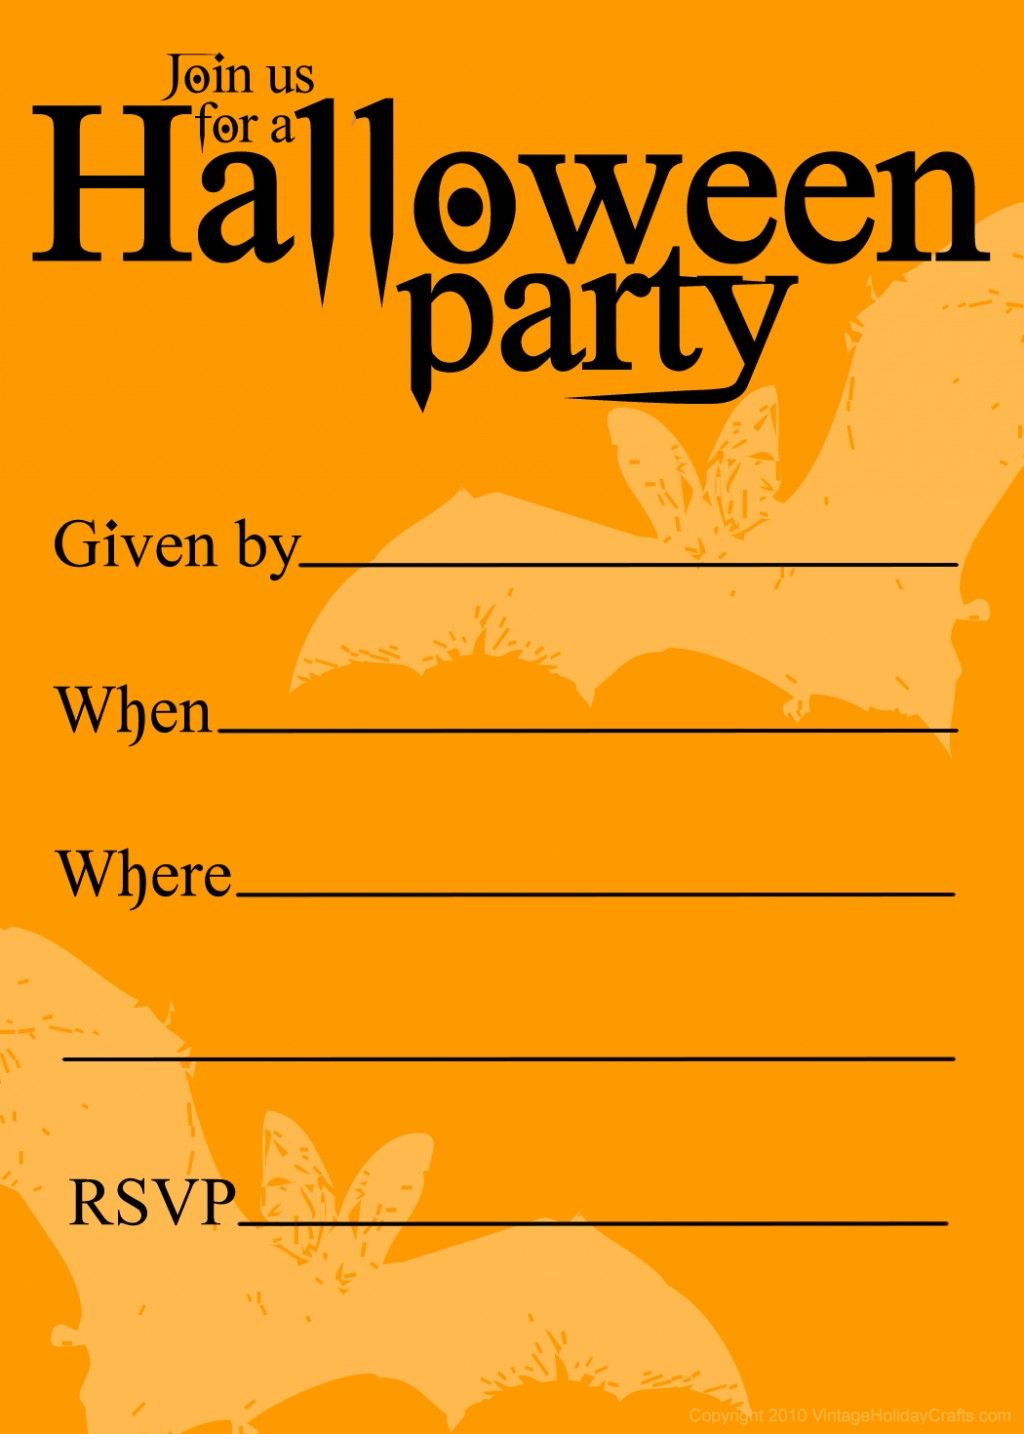 Free Printable Halloween Birthday Invitations Templates | Halloween - Free Halloween Birthday Invitation Templates Printable